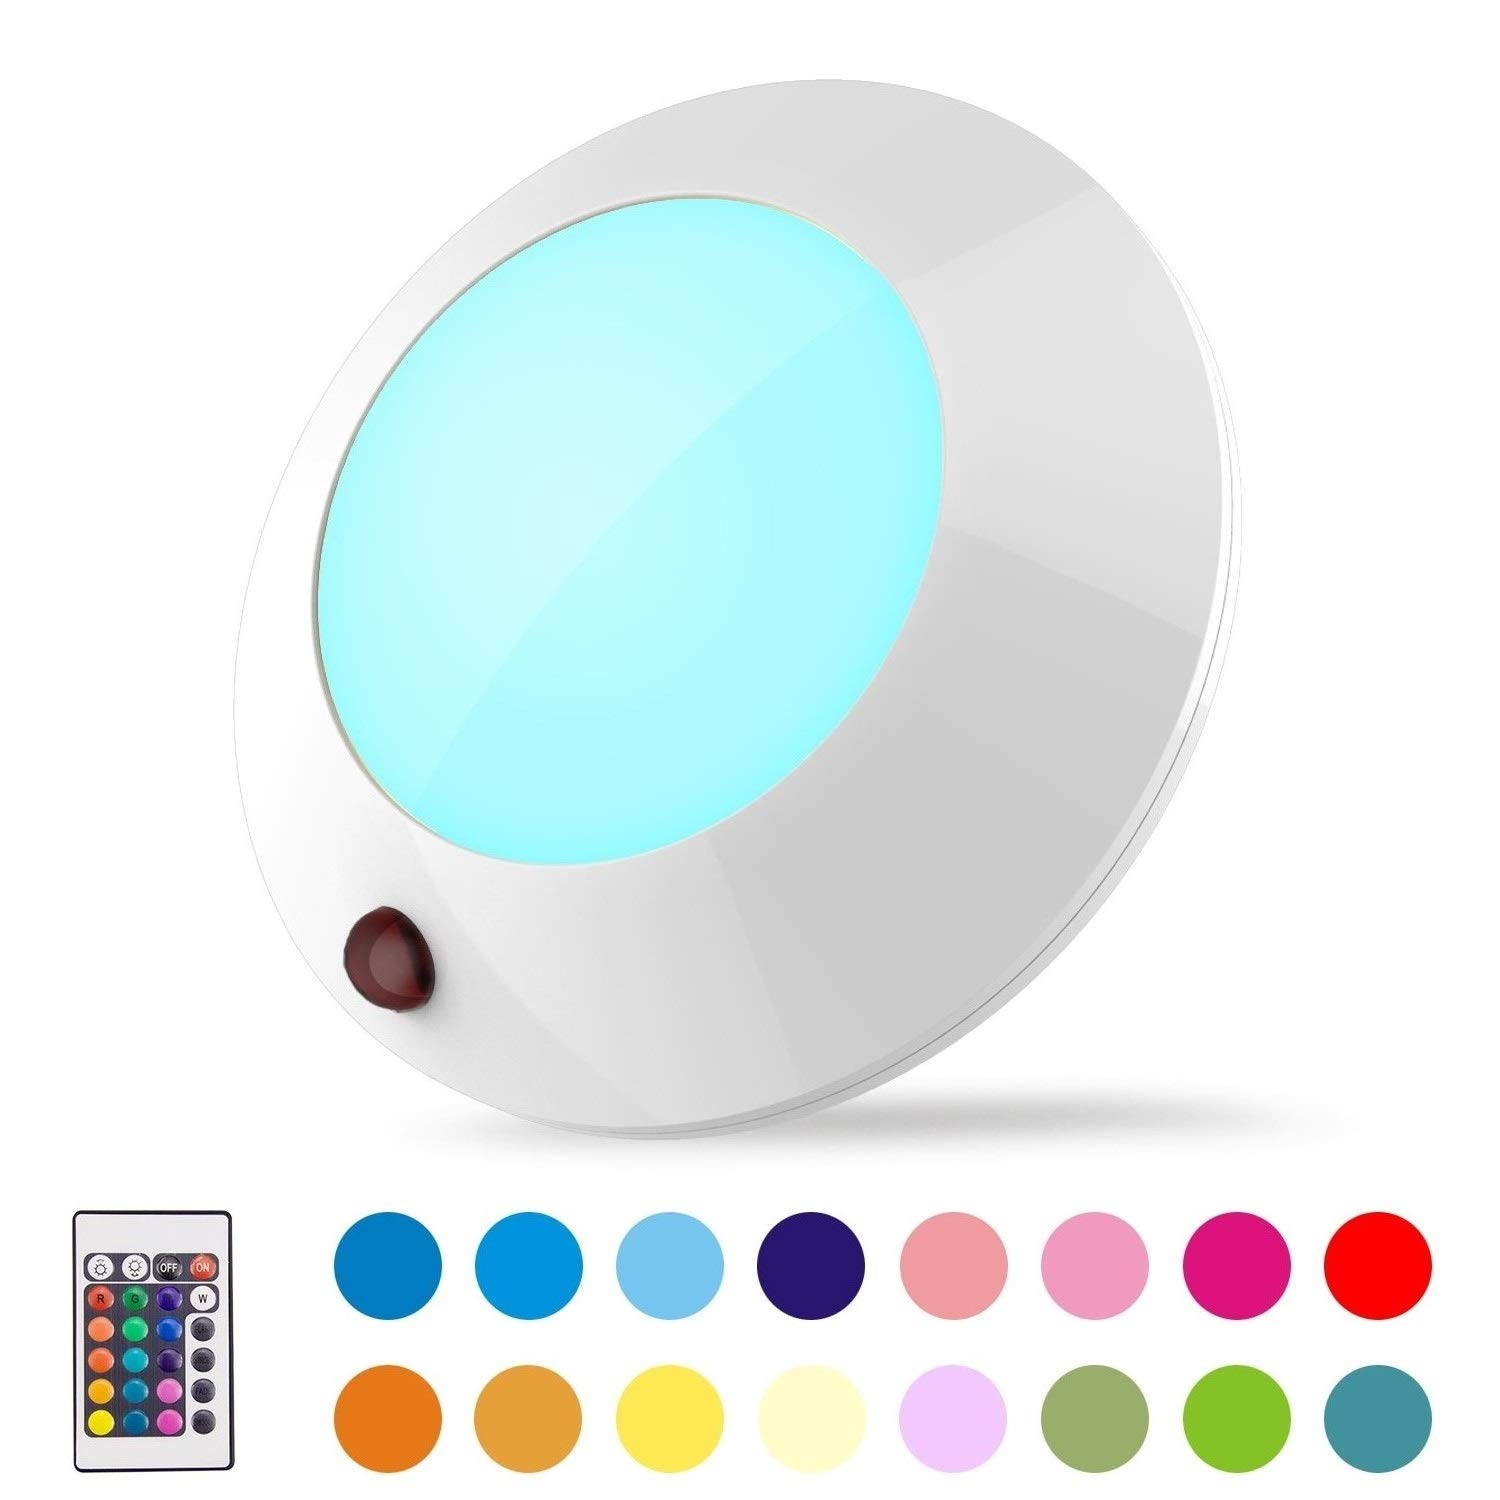 BIGLIGHT Battery Operated LED Ceiling Light Indoor Outdoor, Color Changing Lights, Remote Controlled, Wireless Light for Hallway Shower Shed Closet Corridor Bedroom Bathroom Mood Lighting, 5 Inch